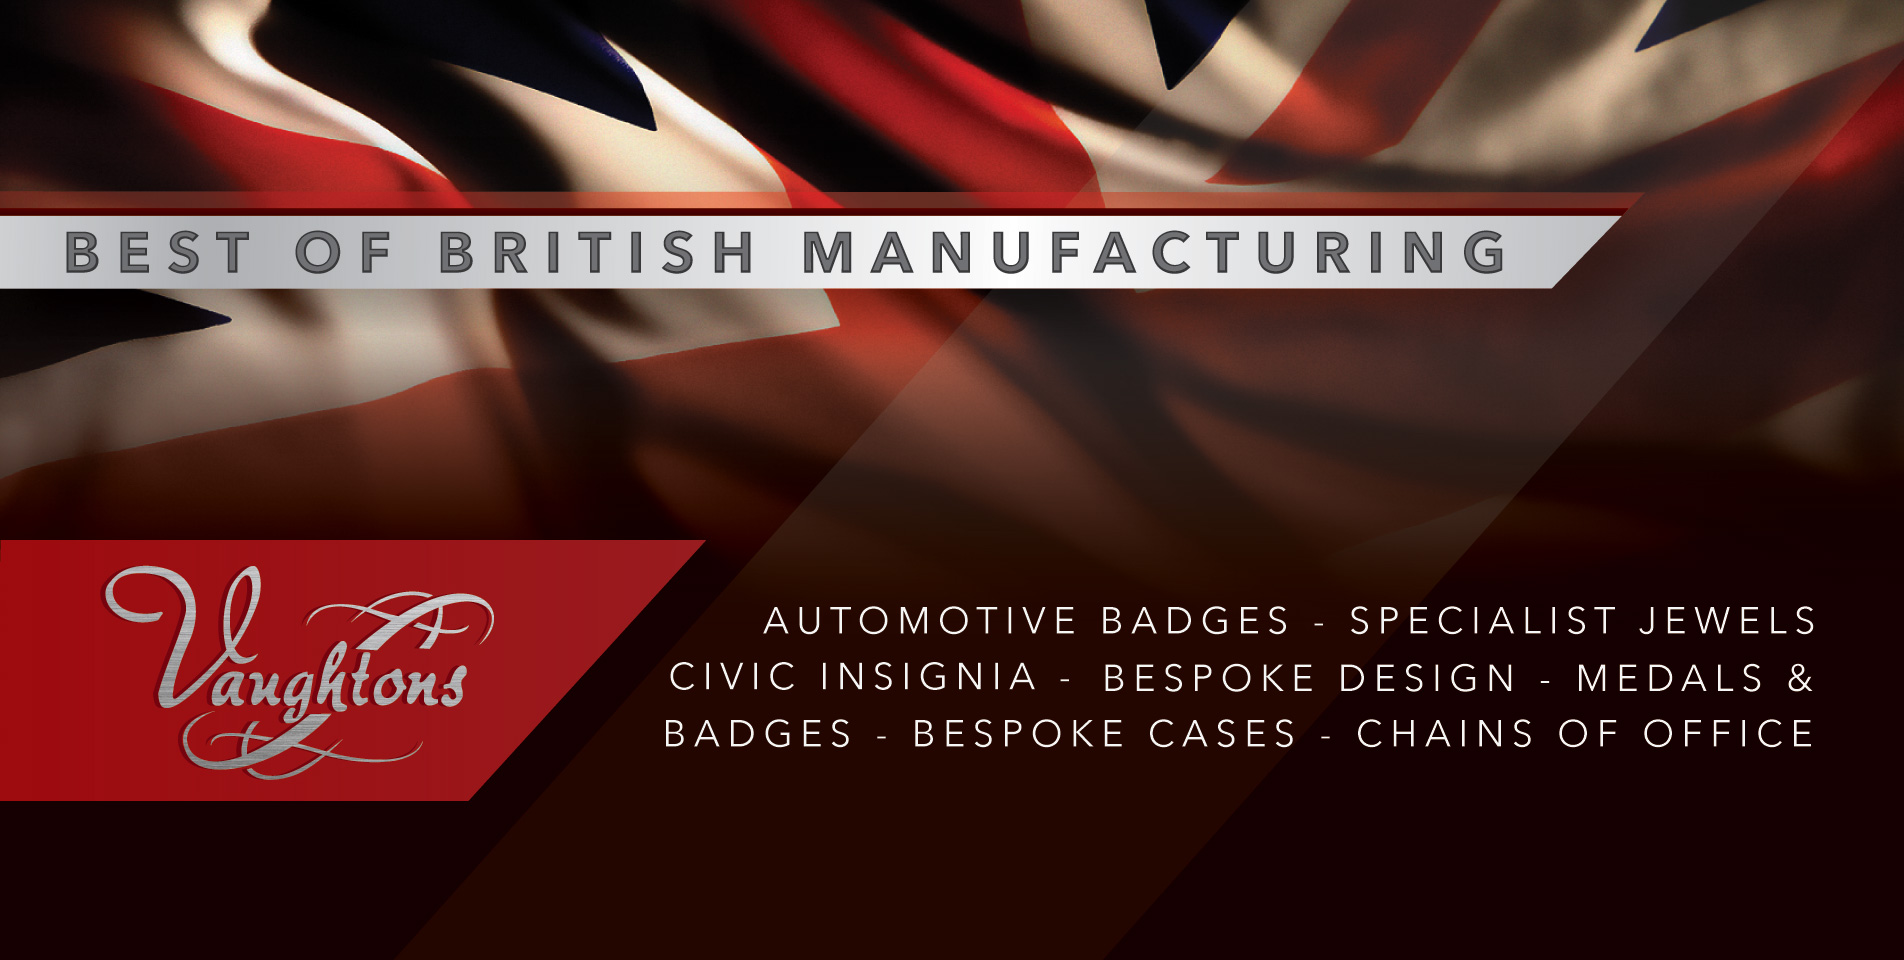 Automotive-Badges-Chains-of-Office-Banner-1